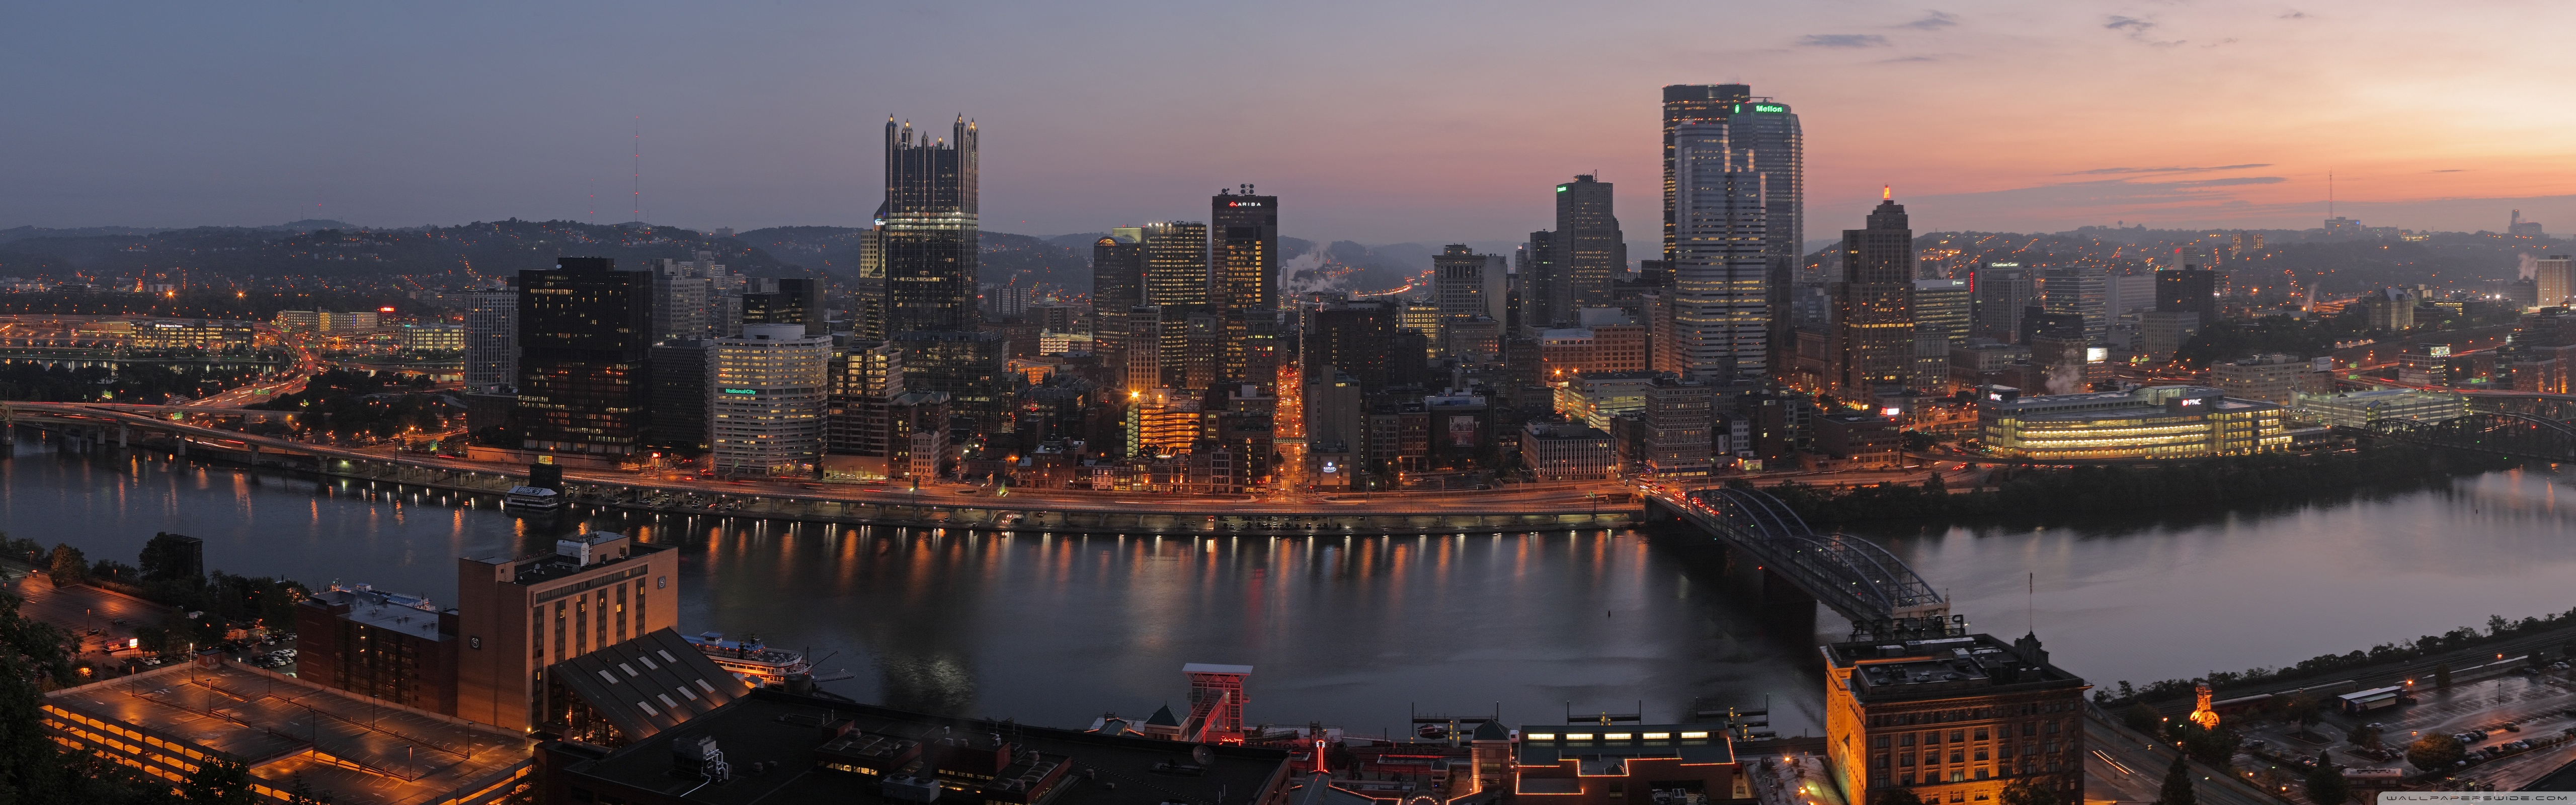 Pittsburgh Panorama 4K HD Desktop Wallpaper for 4K Ultra HD TV 5120x1600